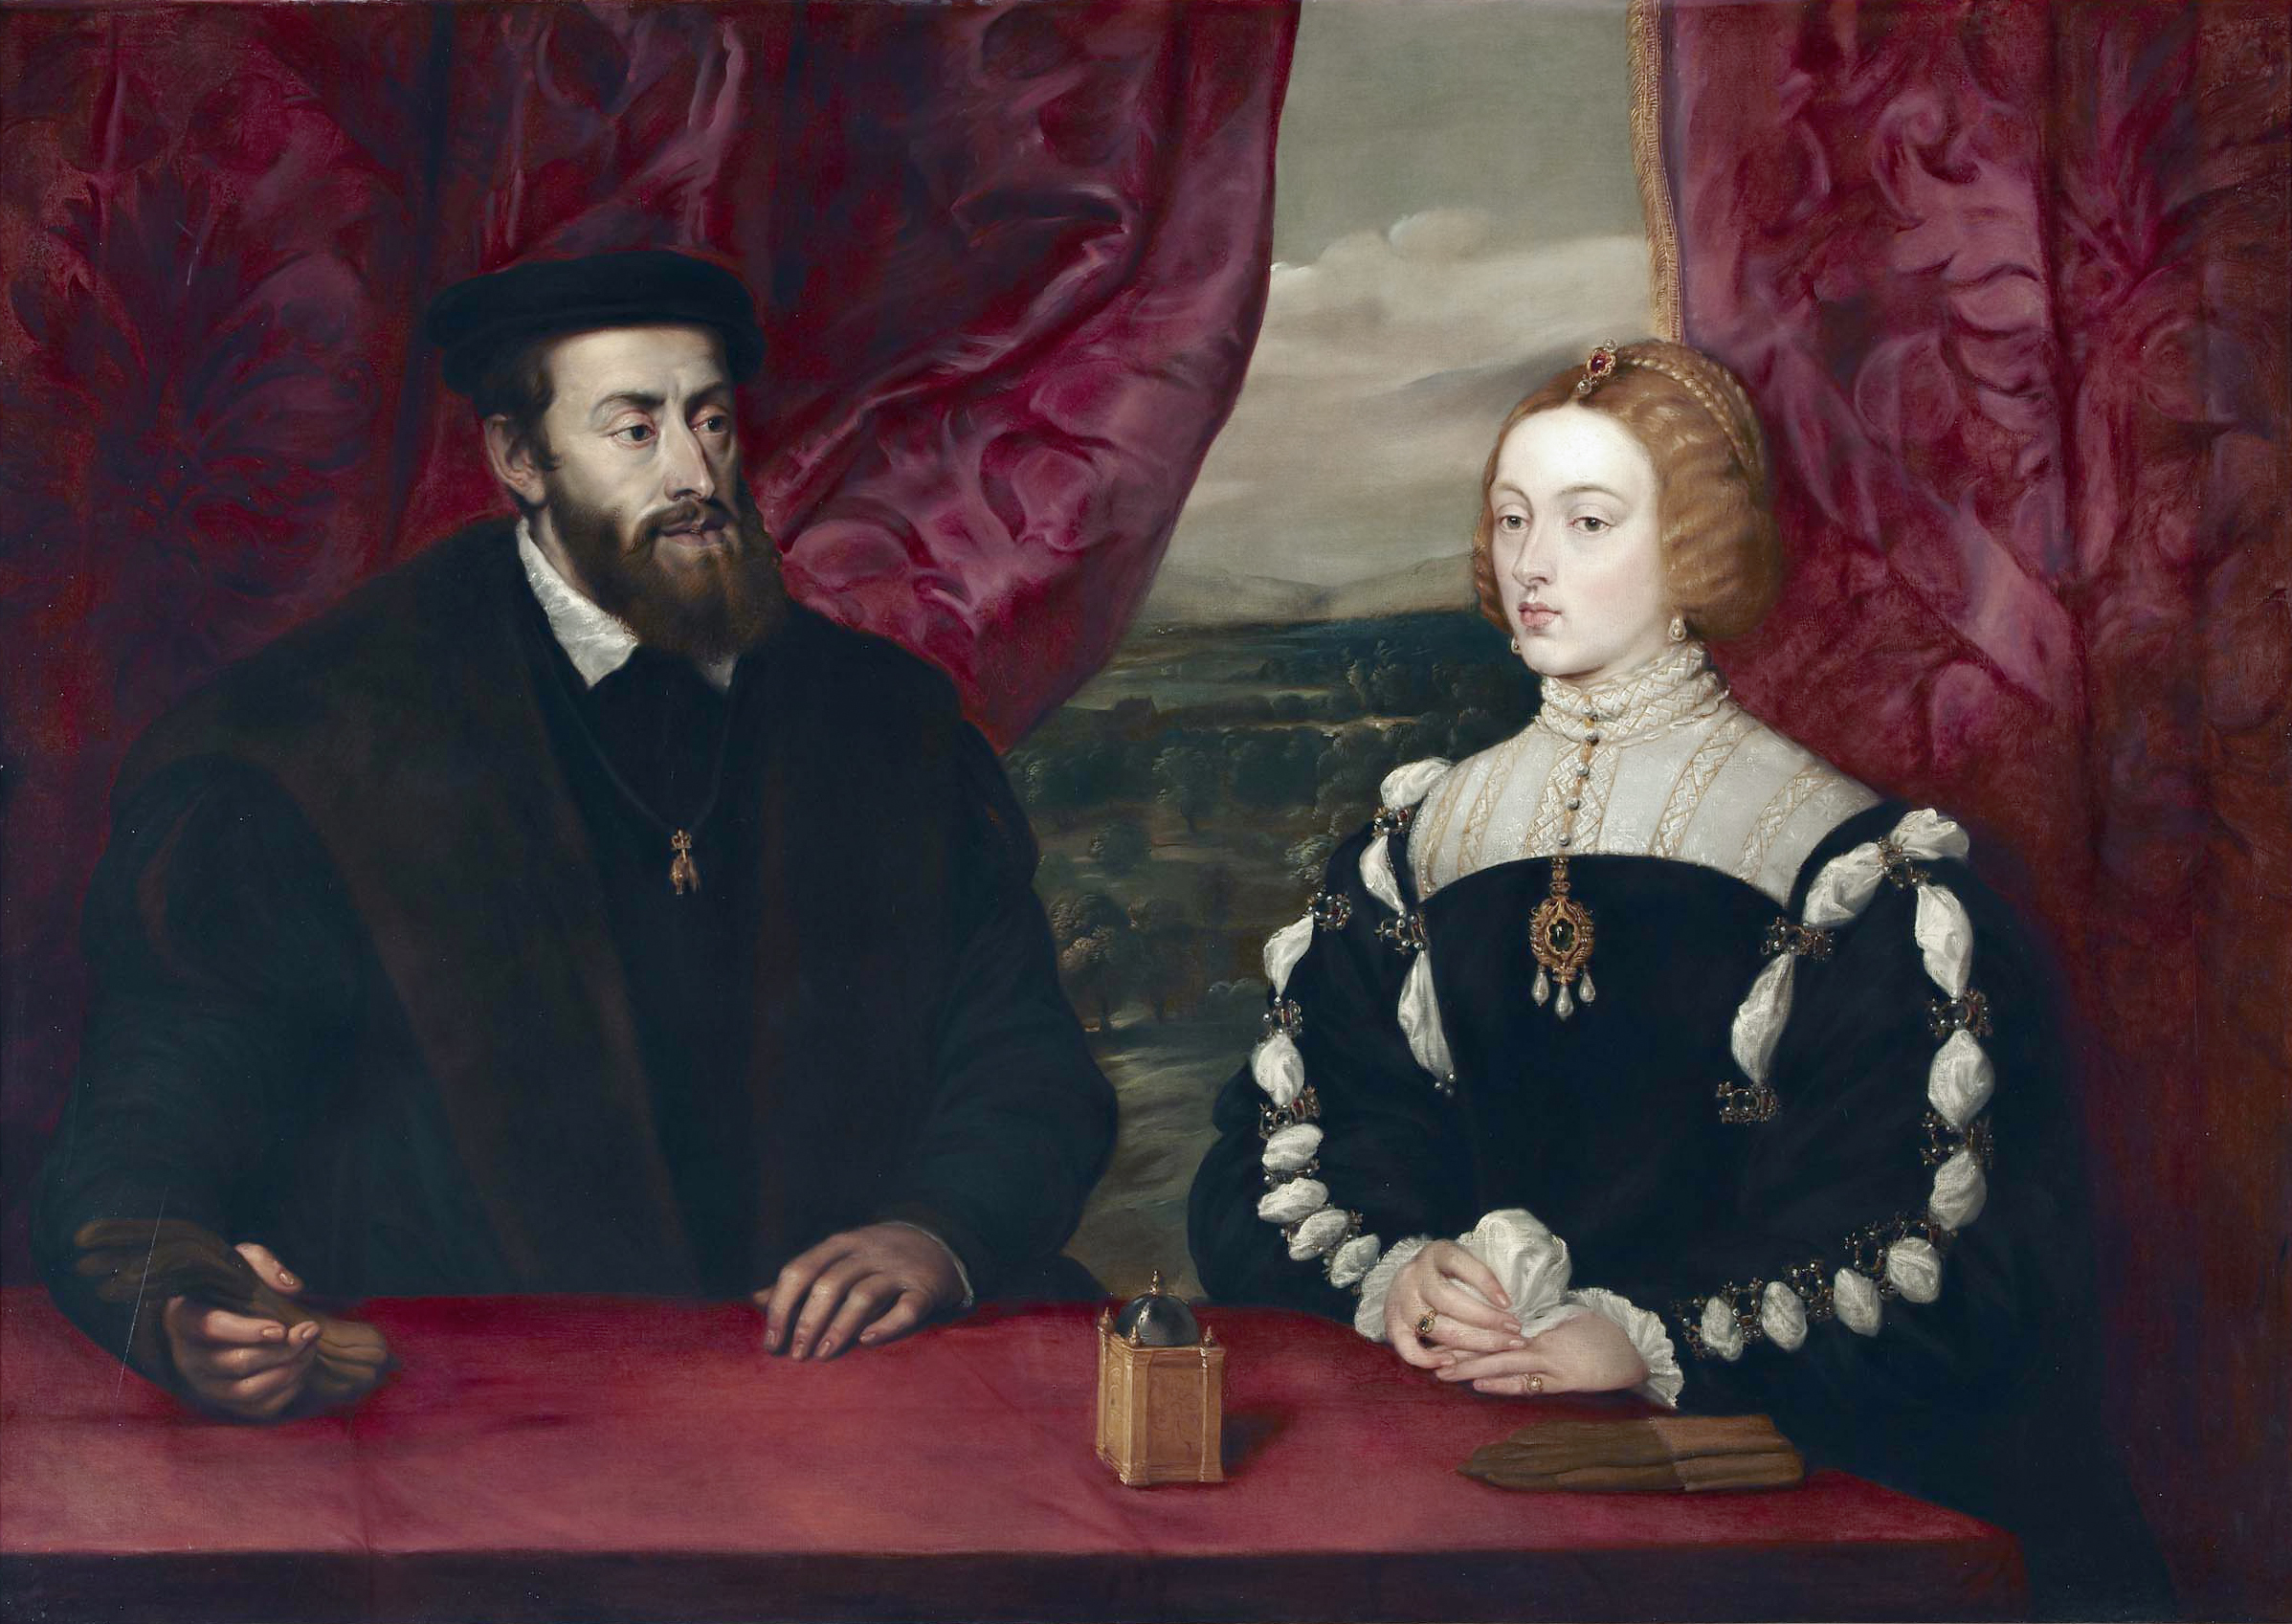 Charles_V_and_Empress_Isabella_of_Portug